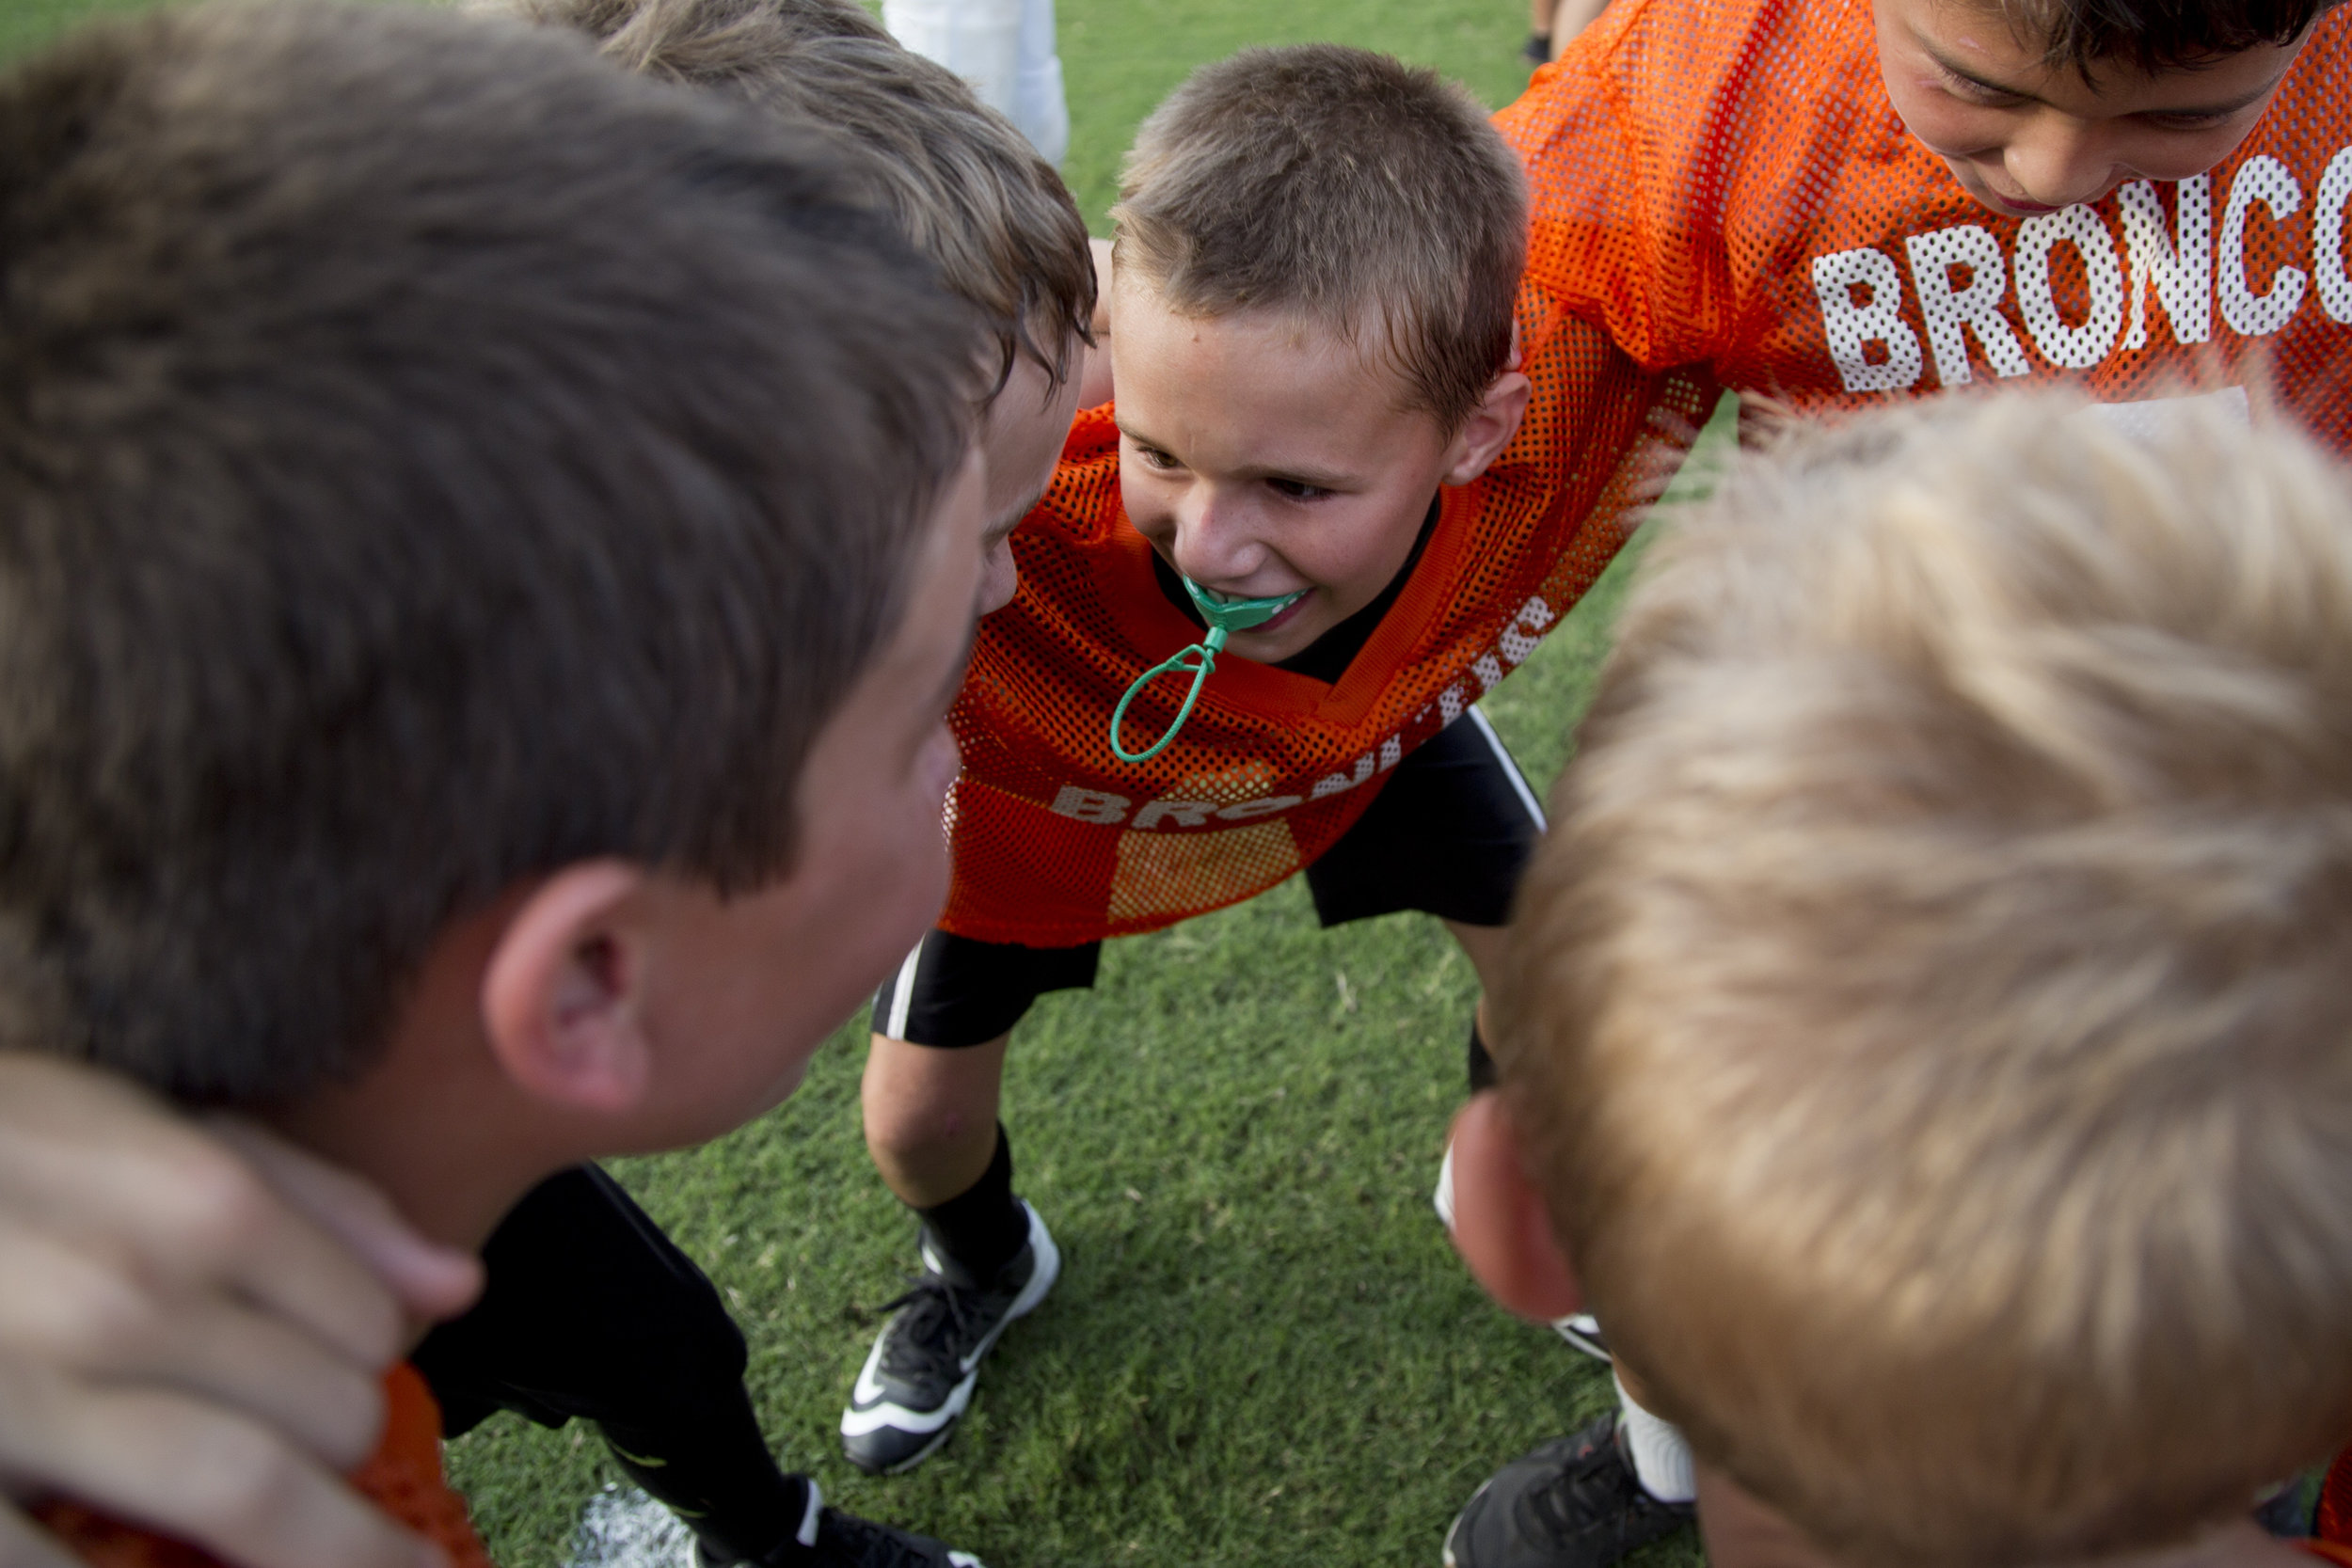 Kaden Meunier of Ferdinand, 9, center, huddled with his new Broncos teammates during SP&F Flag Football Draft Day at Ranger Field in Ferdinand on Wednesday. Over 50 second-, third-, and fourth-graders were drafted onto six different flag football teams.